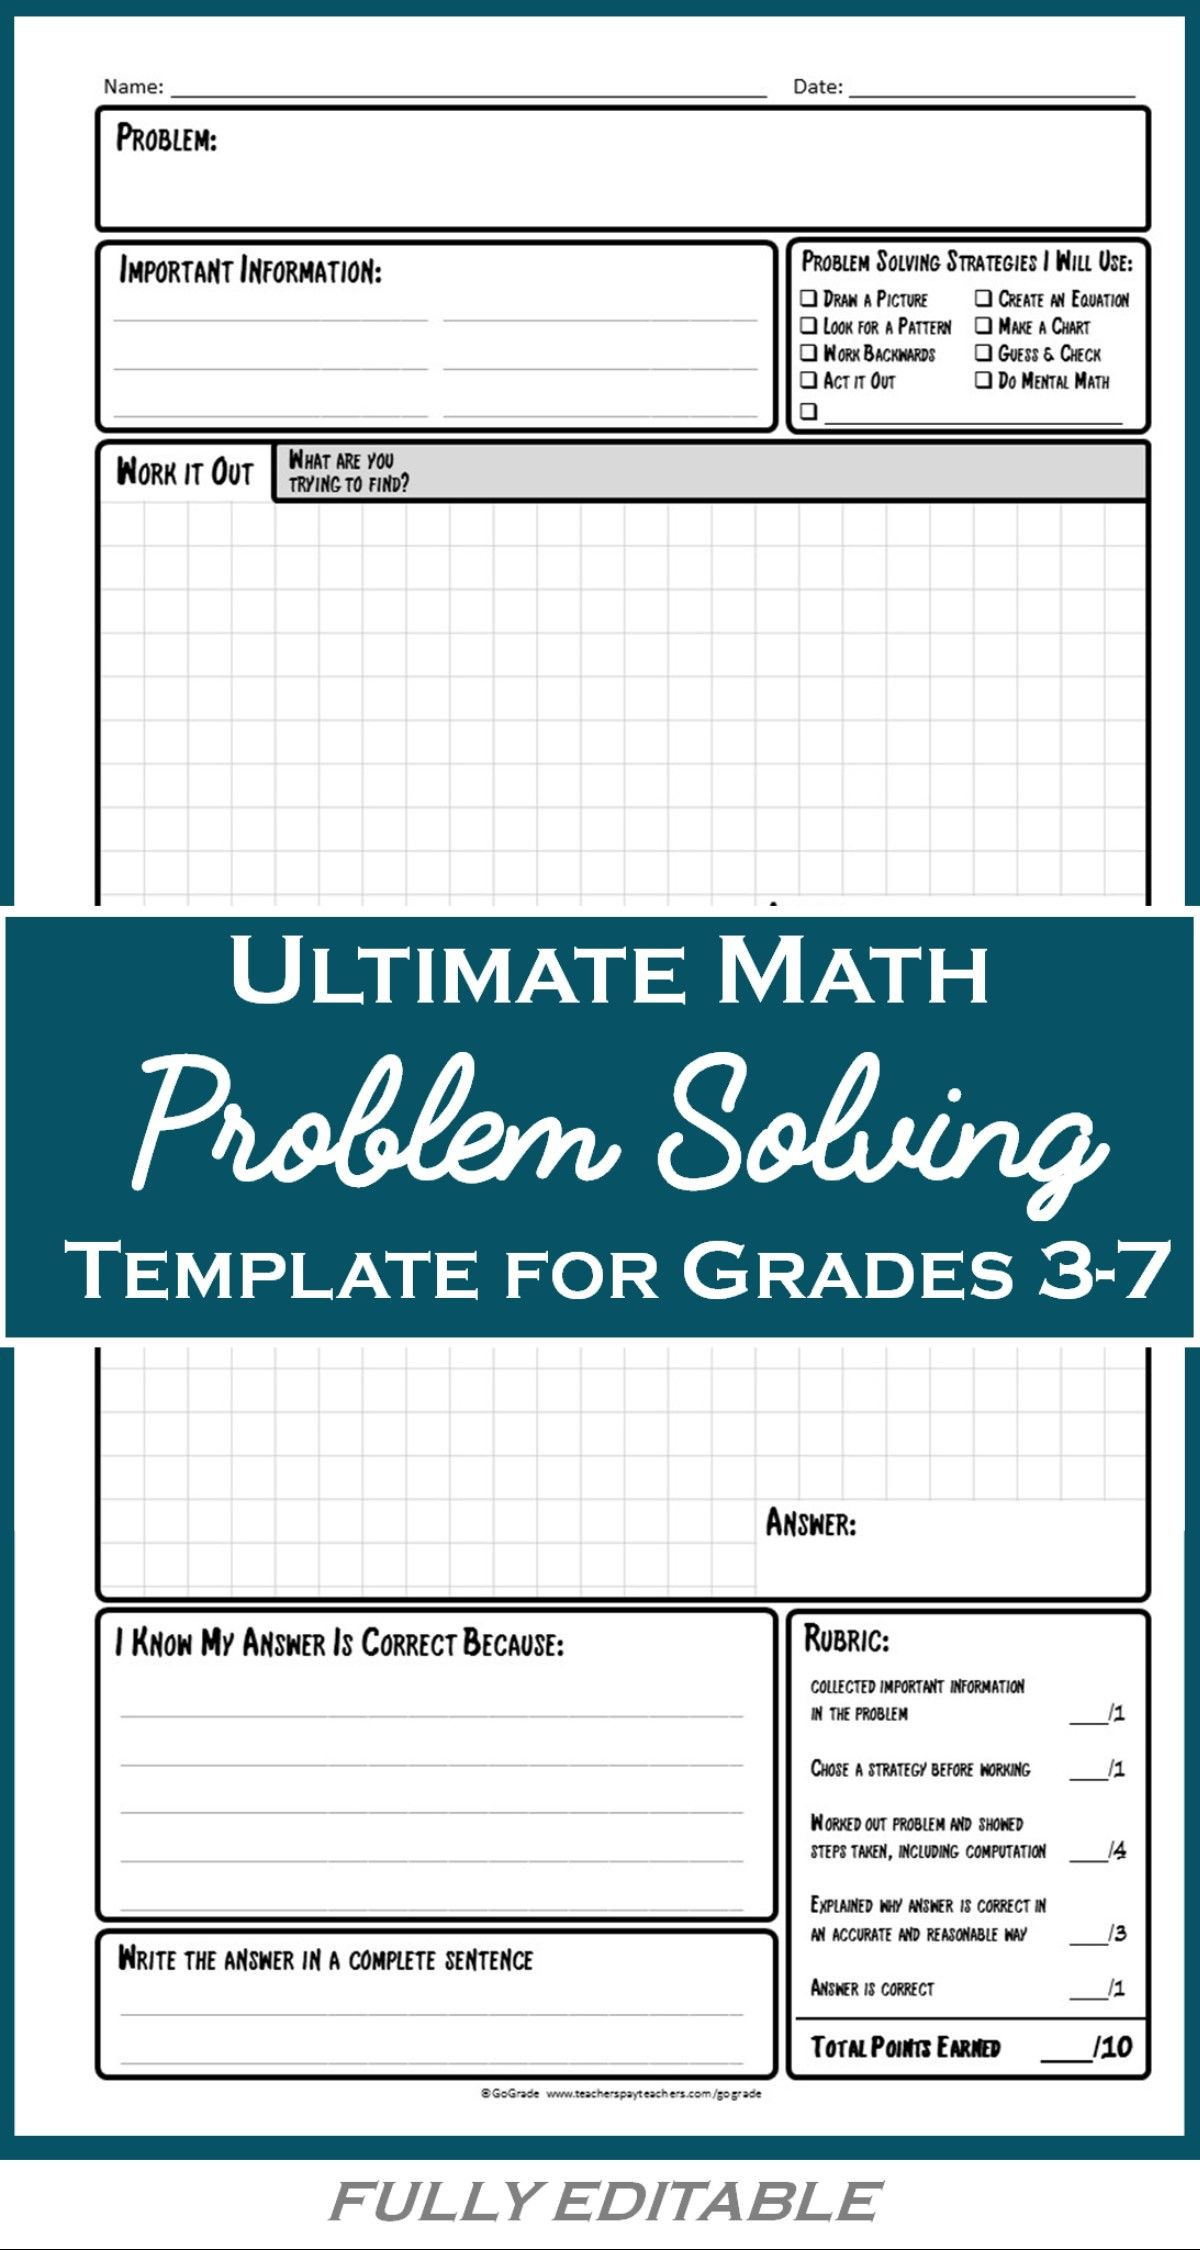 Problem solving Skills Worksheets Math Problem solving Worksheets A Structured Strategy for